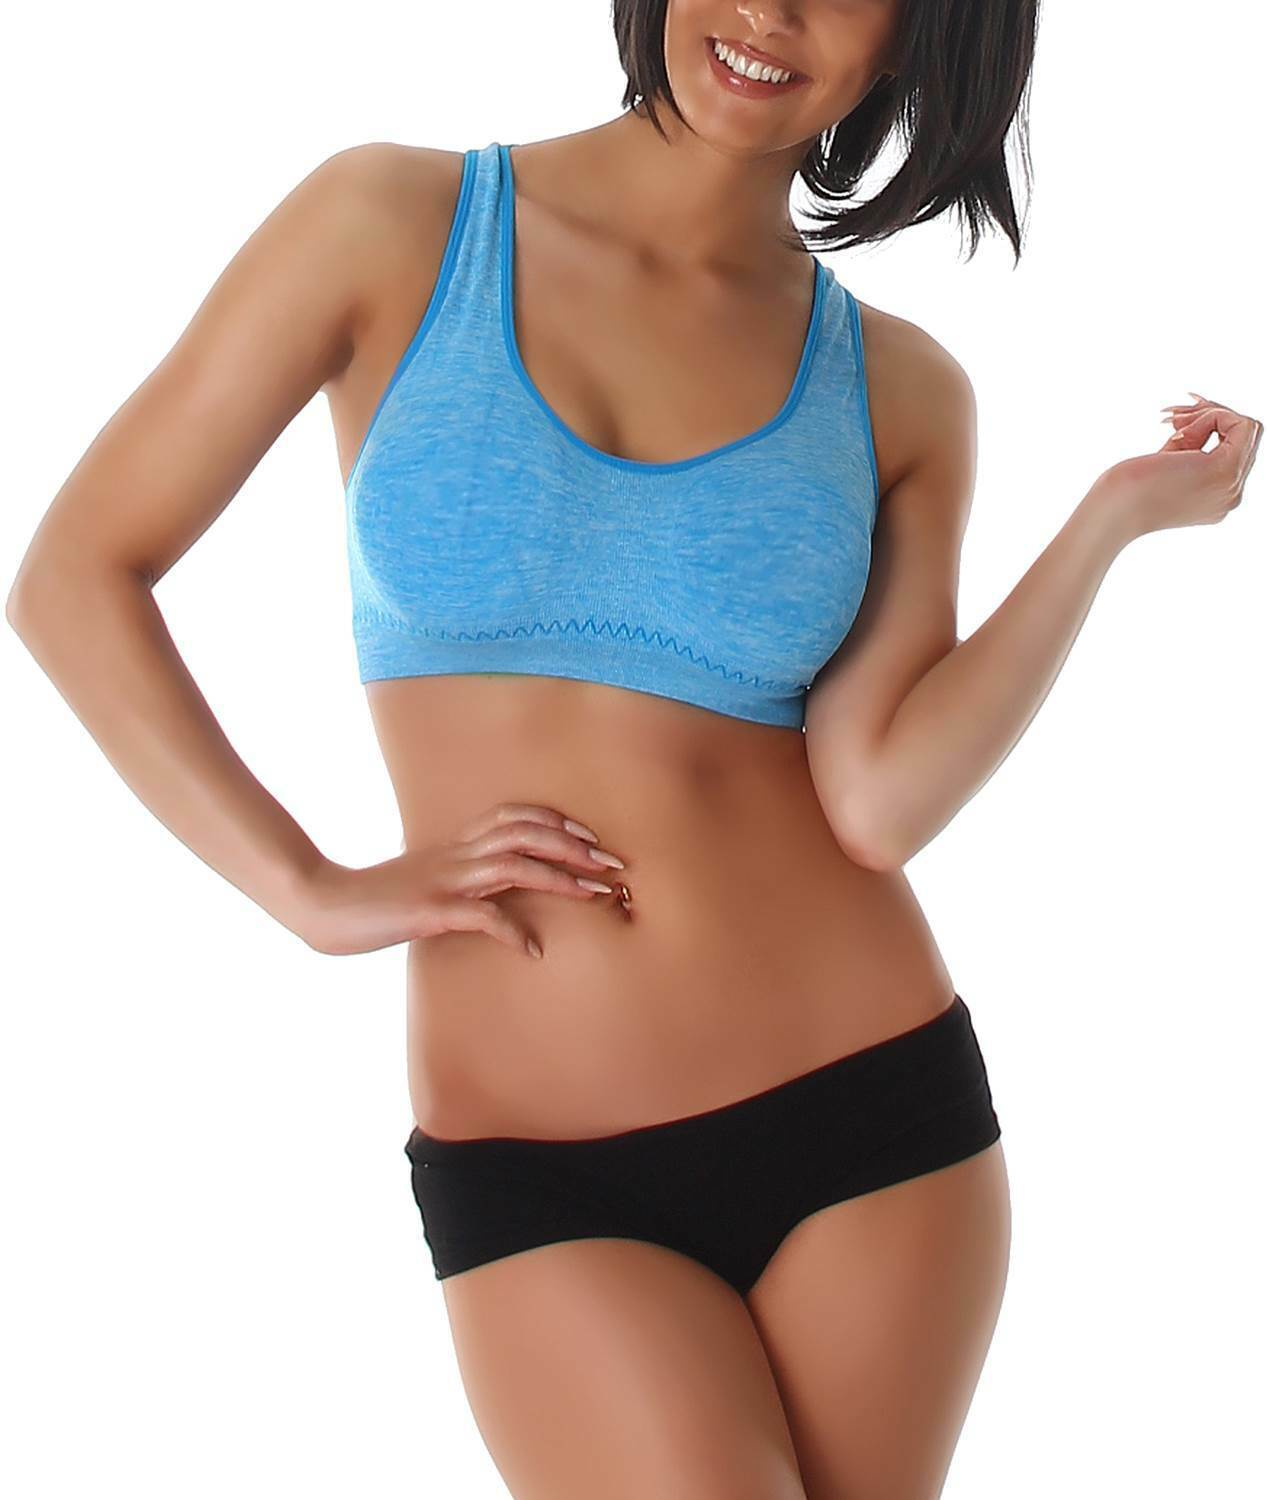 Sport-BH Push-Up Stretch Soft Bustier Top Fitness Yoga Work-Out Cup 60 – 80 B-C